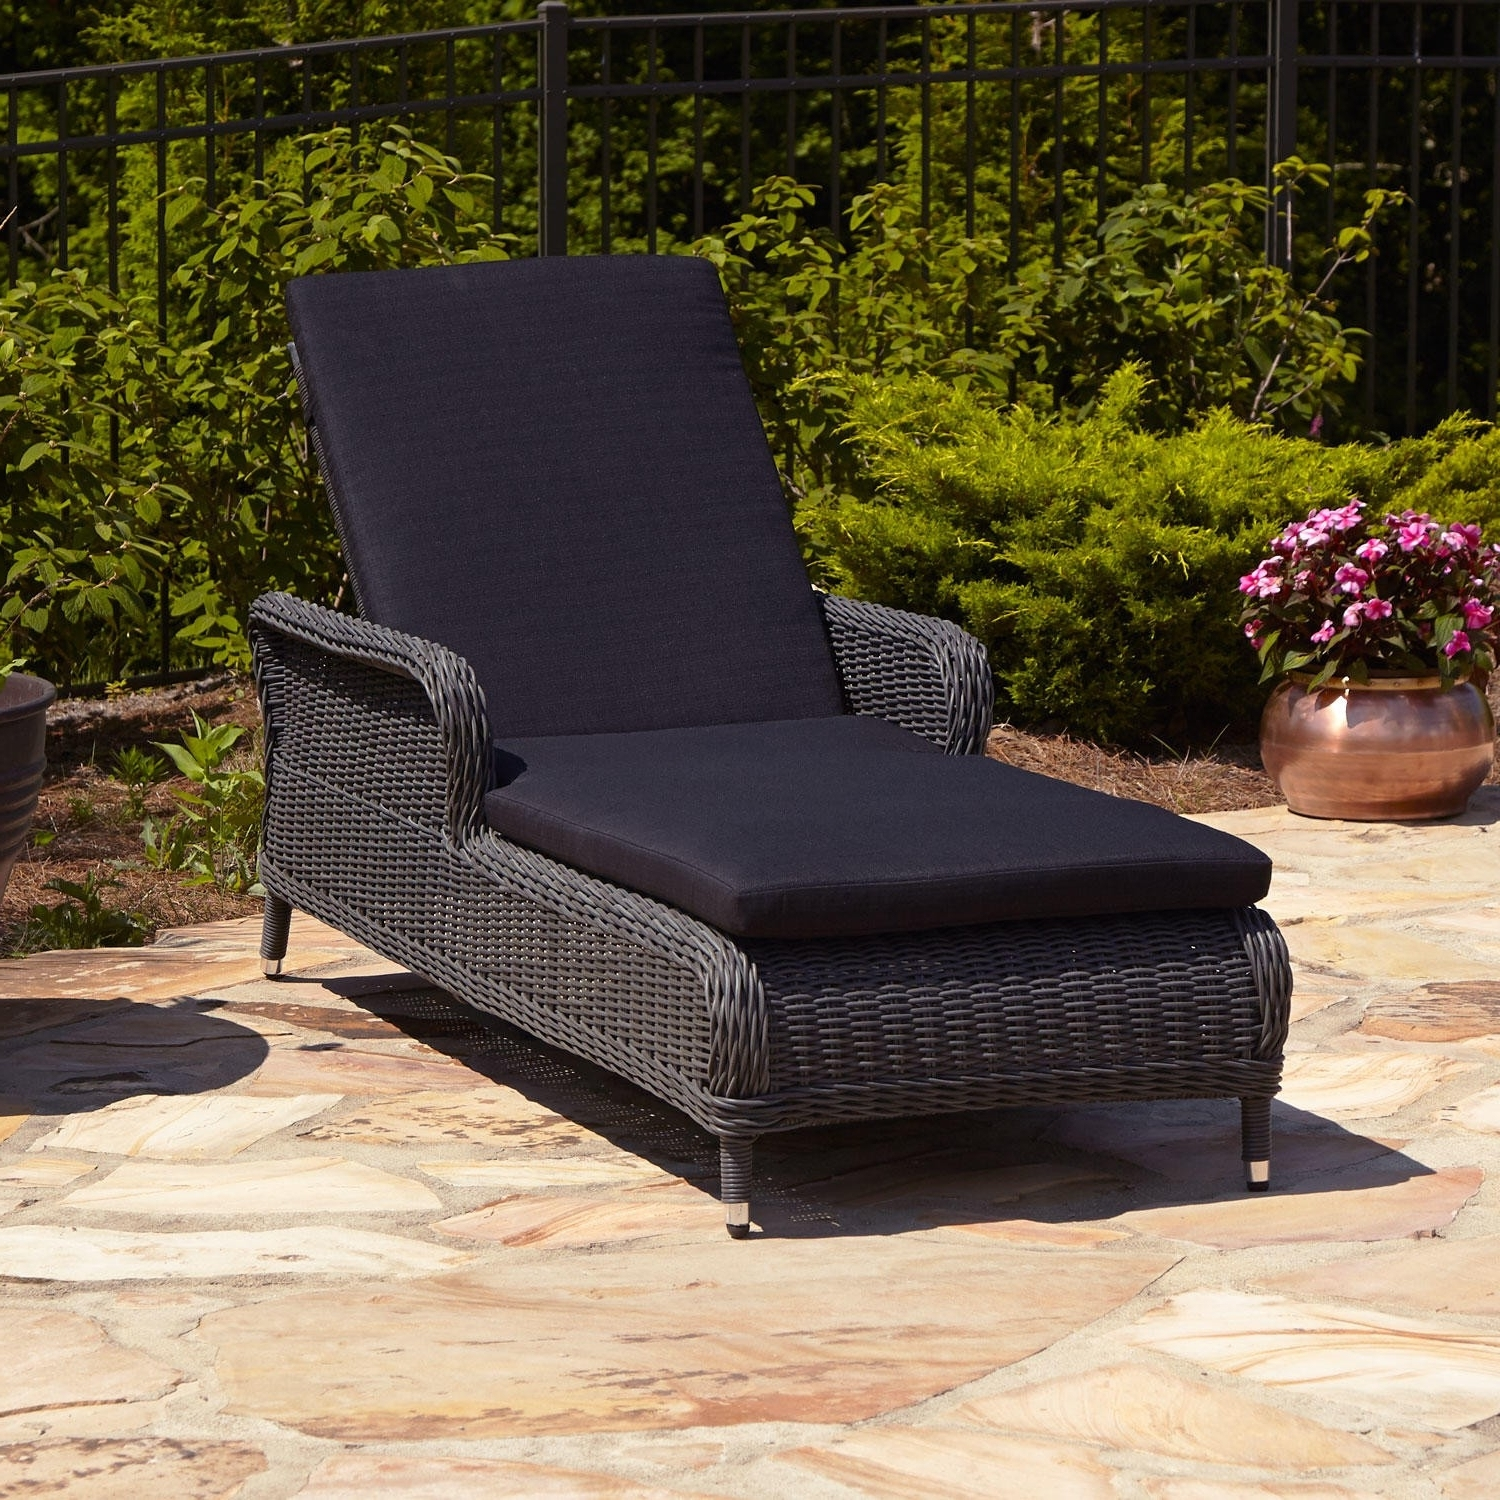 Preferred Grey Wicker Chaise Lounge Chairs in Grey Wicker Lounge Chairs • Lounge Chairs Ideas